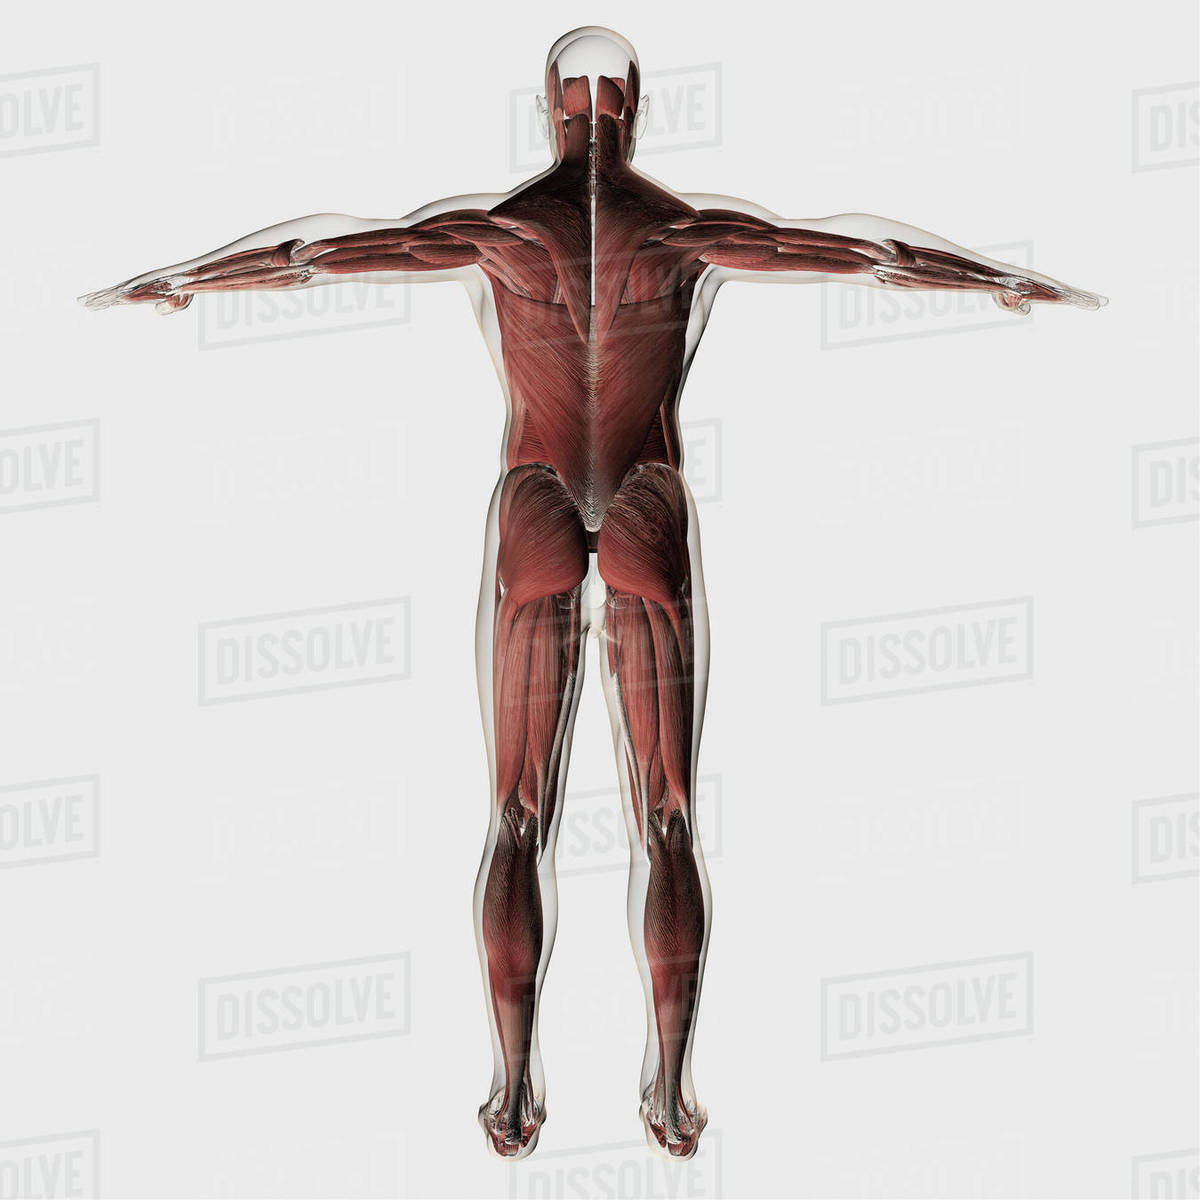 Male Muscle Anatomy Of The Human Legs Posterior View Stock Photo